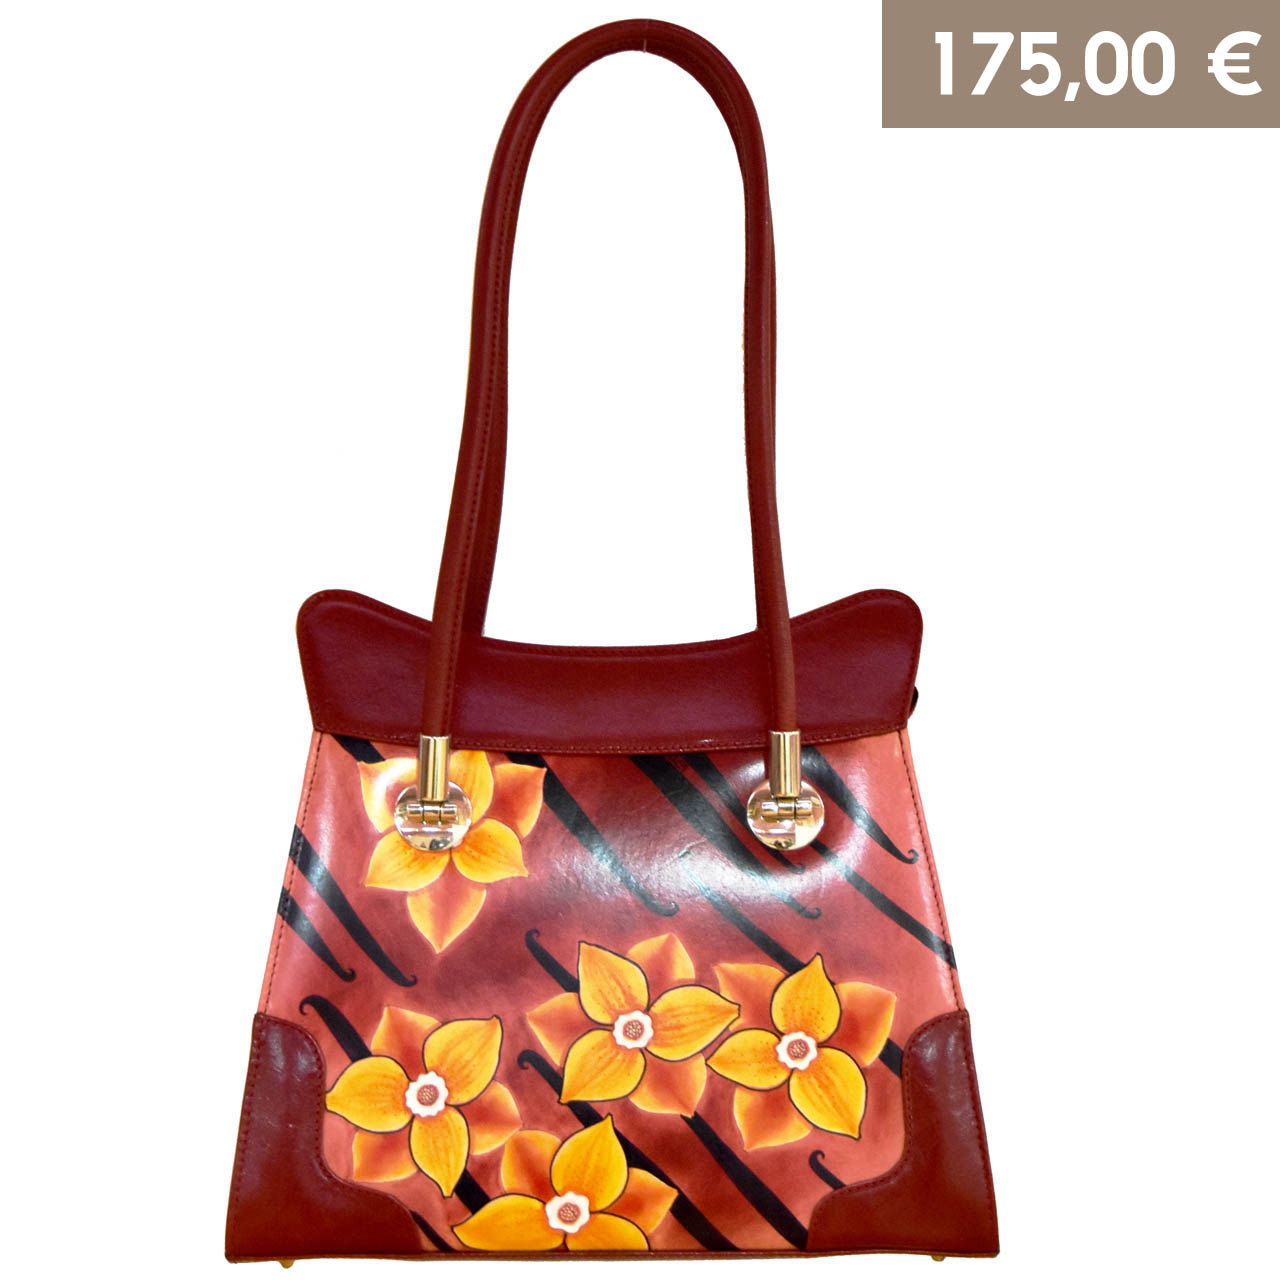 Art bag bambas collection barin events the yellow narcissus for my friend with price sale